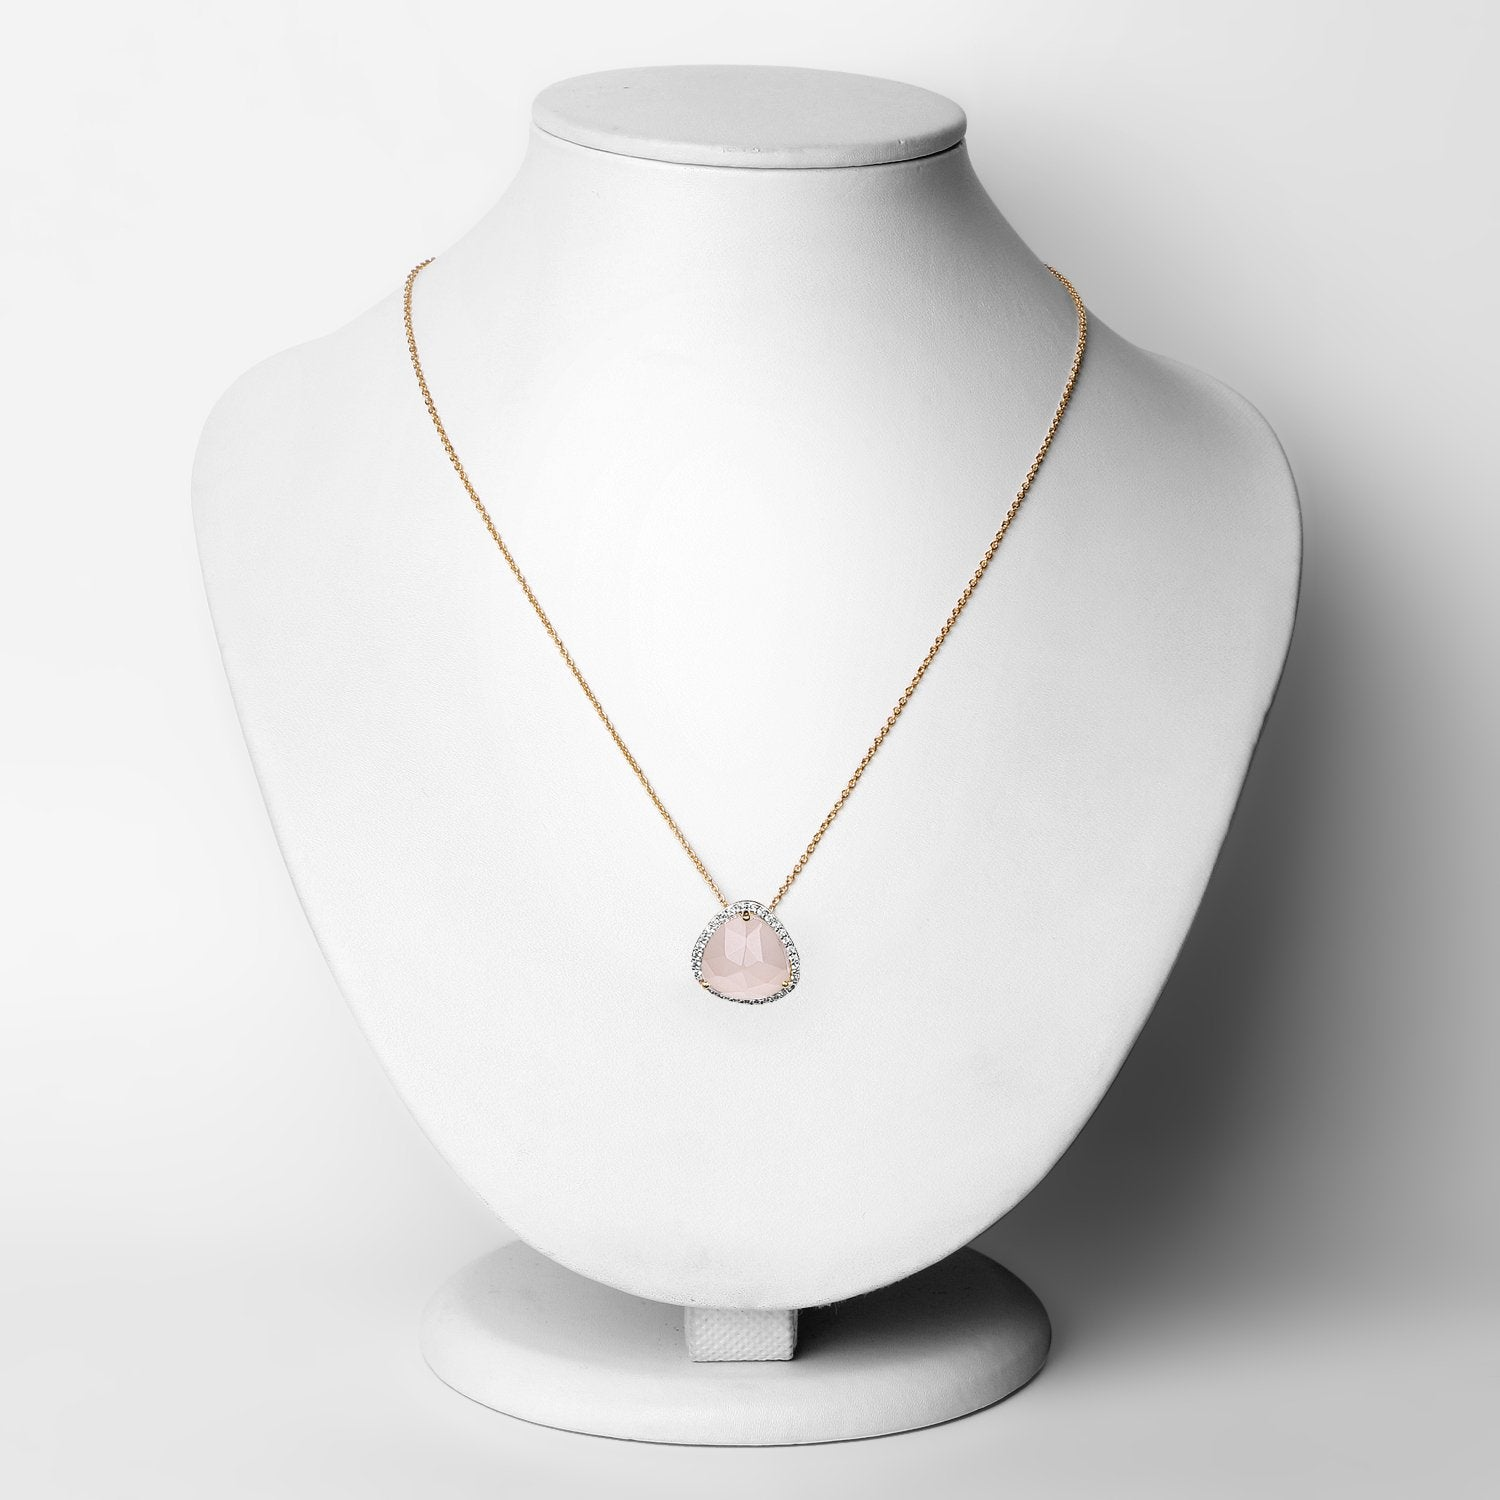 LoveHuang 3.38 Carats Genuine Rose Quartz and White Topaz Pendant Solid .925 Sterling Silver With 18KT Yellow Gold Plating, 18Inch Chain